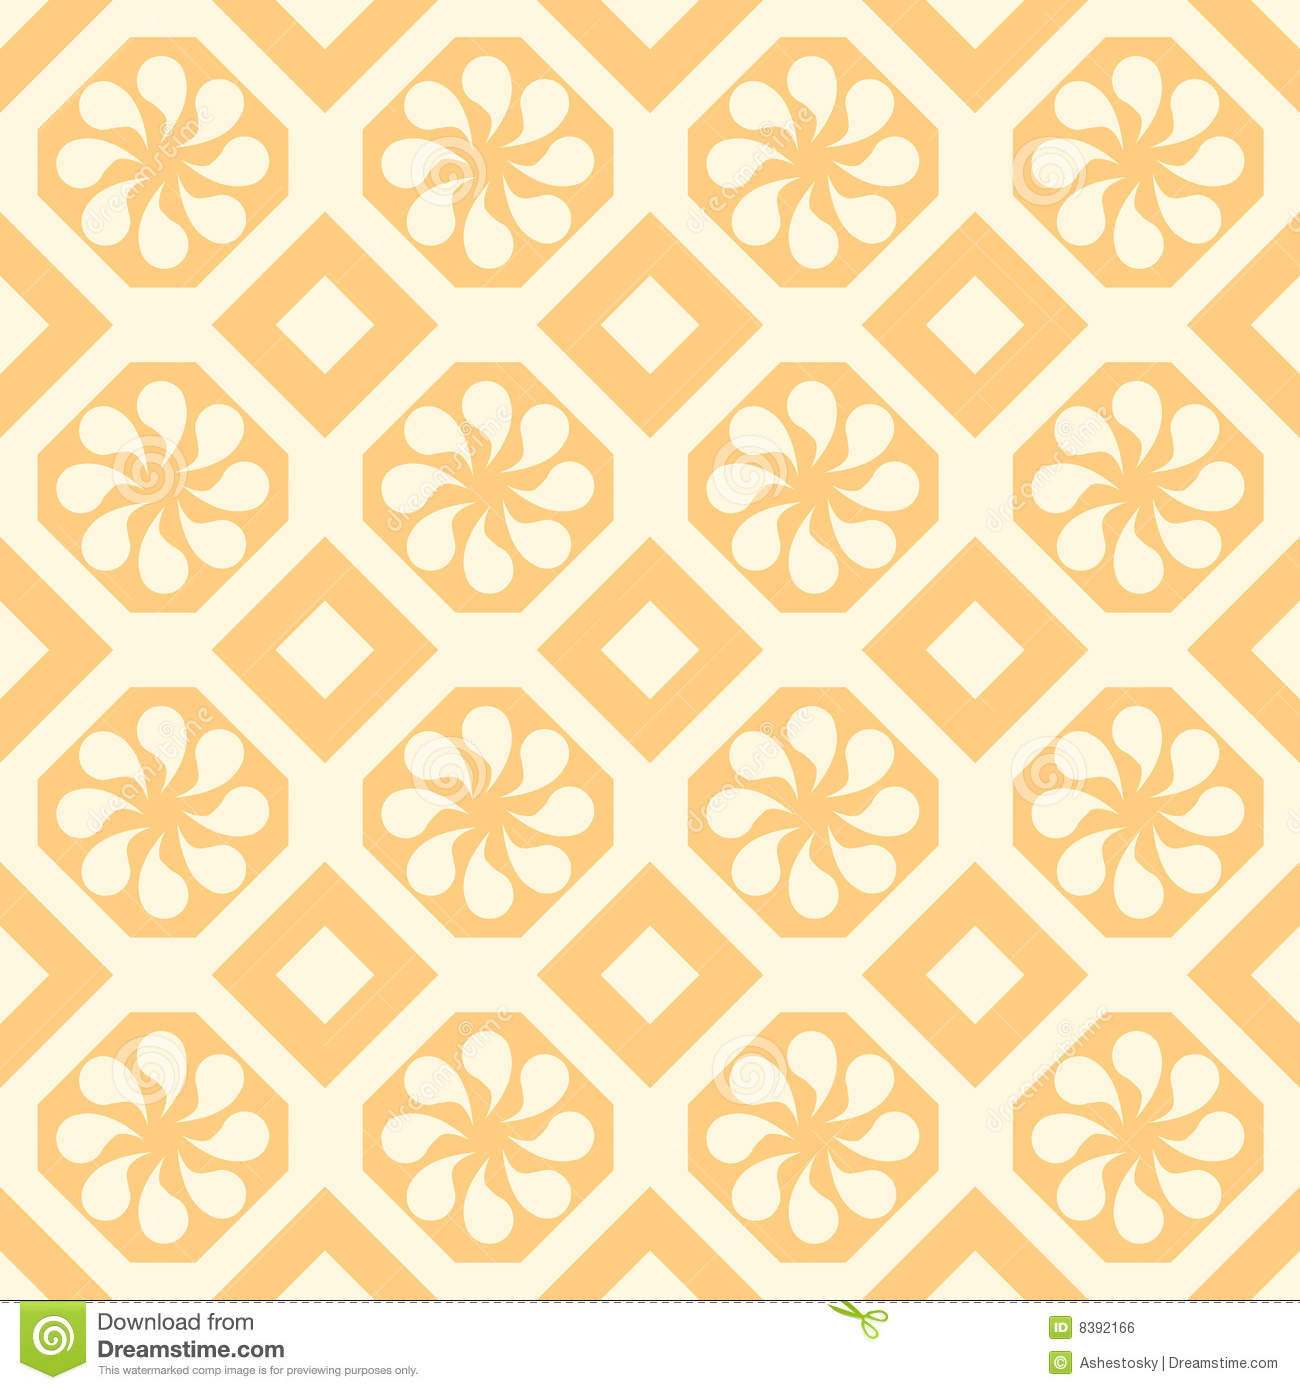 Wallpaper For Kitchen Texture: Fabric Tile Wallpaper Texture Kitchen Royalty Free Stock